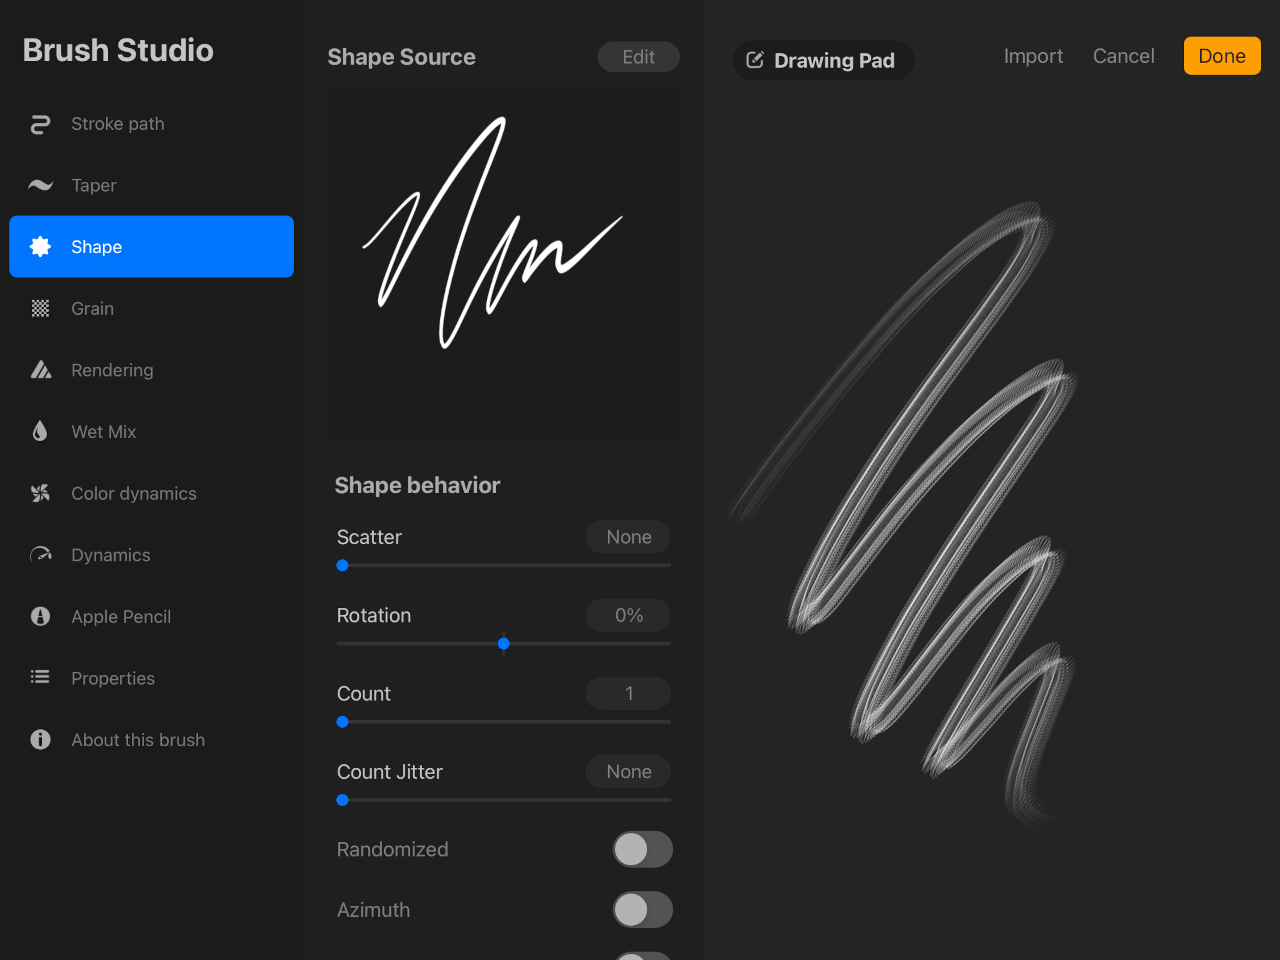 Signature pasted as a brush